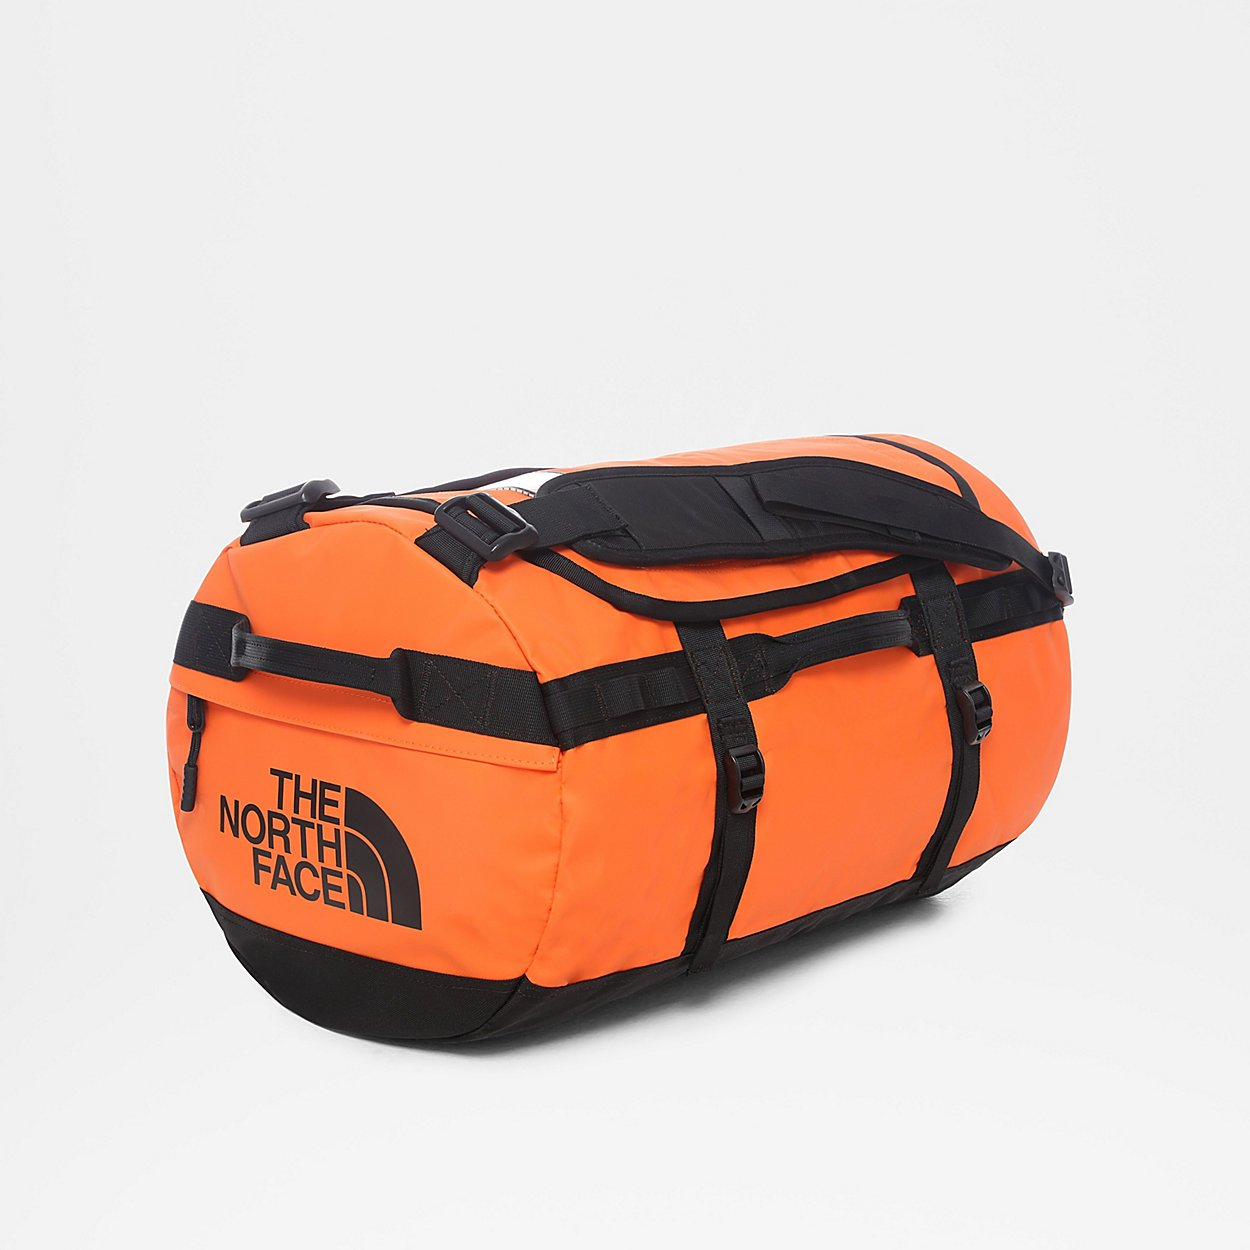 THE NORTH FACE Base Camp Duffel S, městský